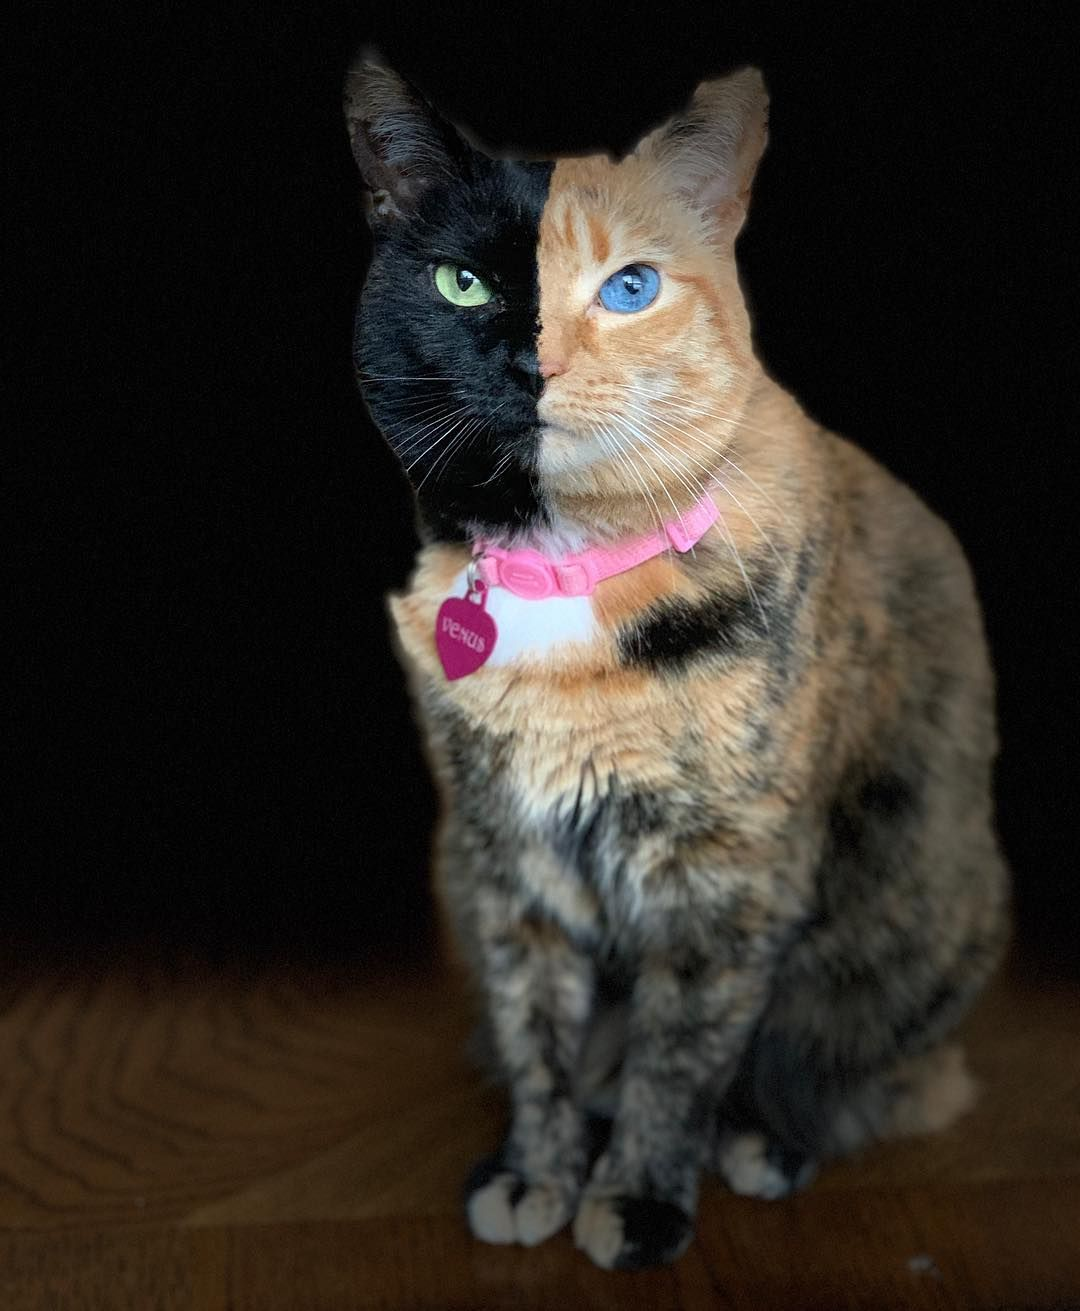 Venus The Two Face Cat On Instagram Stage Light Edit Tool Darkening Background Yay Or Nay Iphonexsmax Photoediting P Tabby Cat Orange Tabby Cats Cats